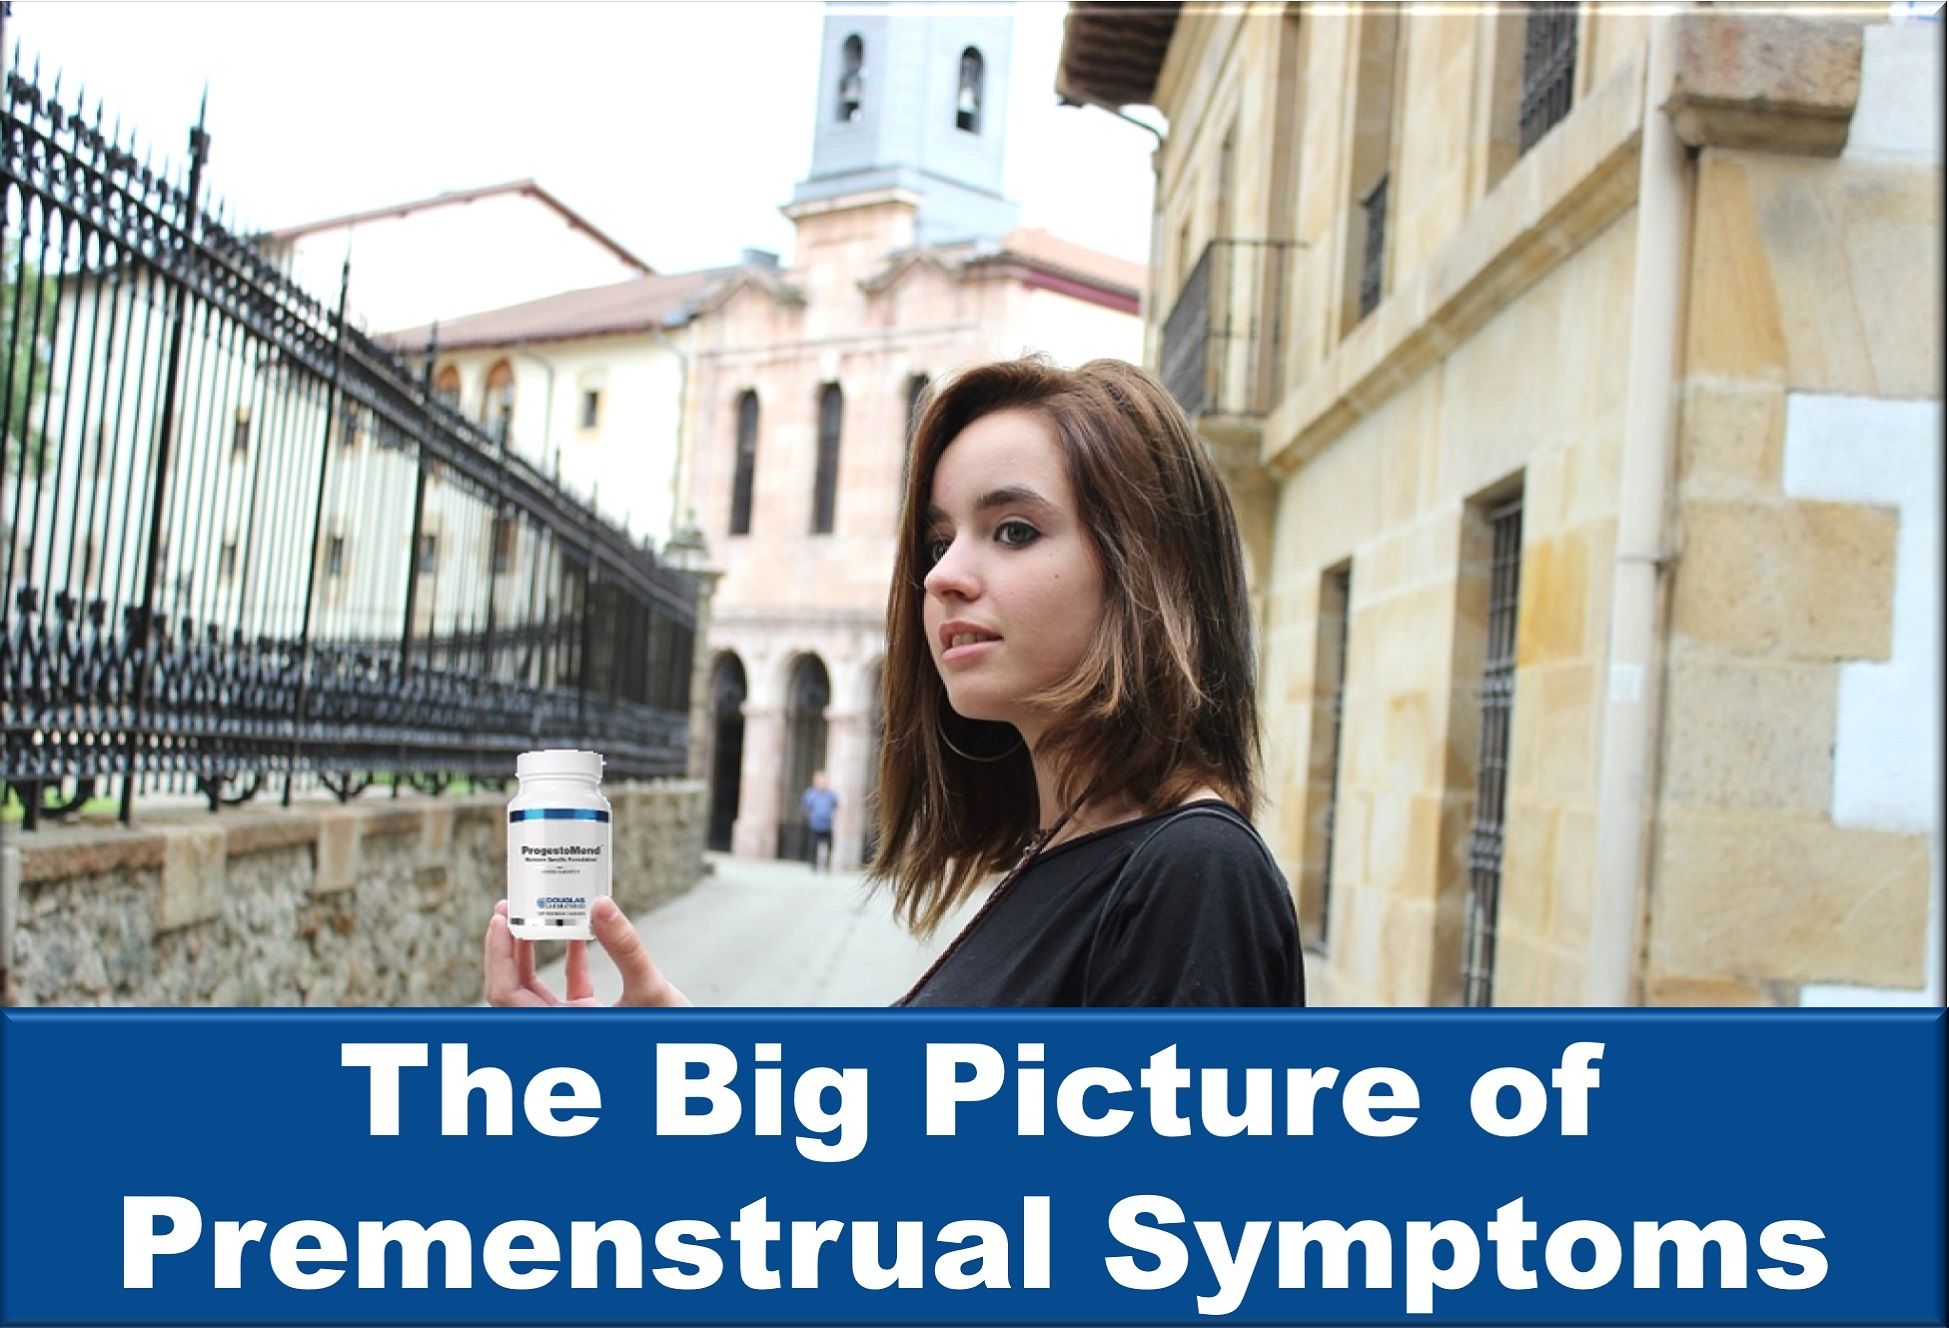 The Big Picture of Premenstrual Symptoms